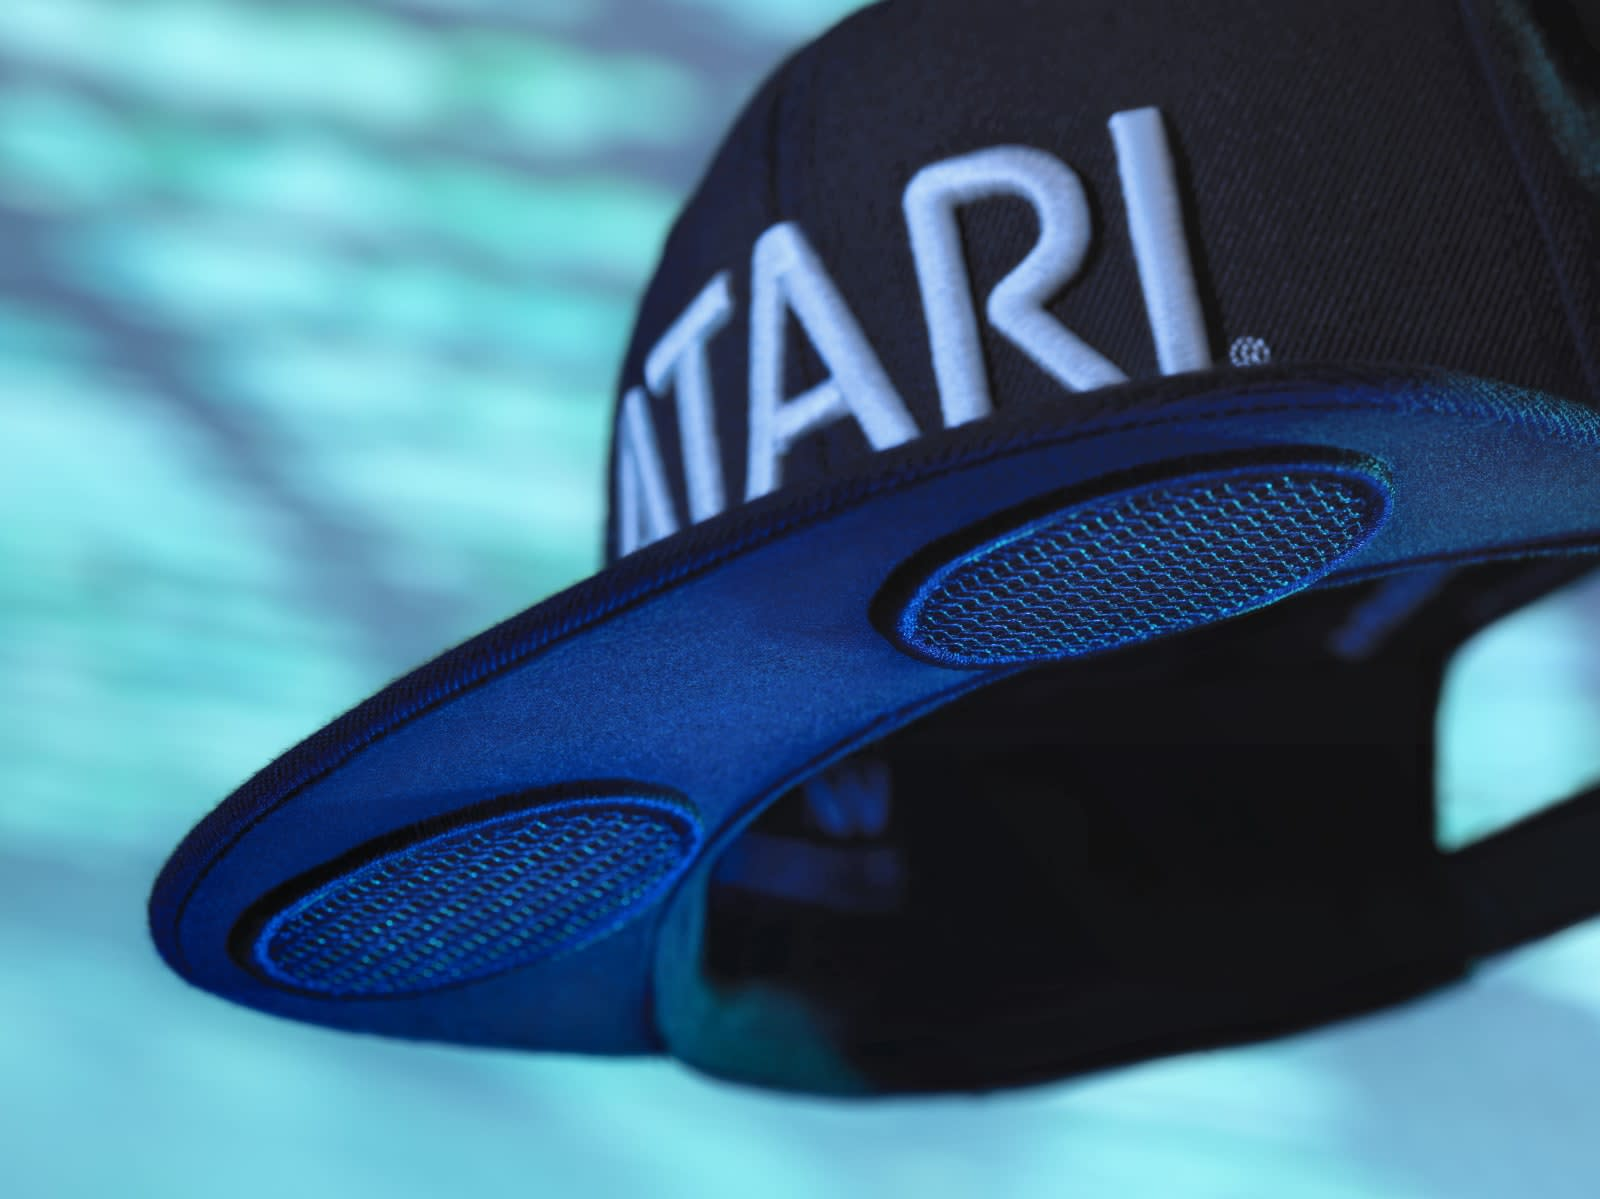 Atari introduces the Speakerhat, a hat with speakers  Engadget